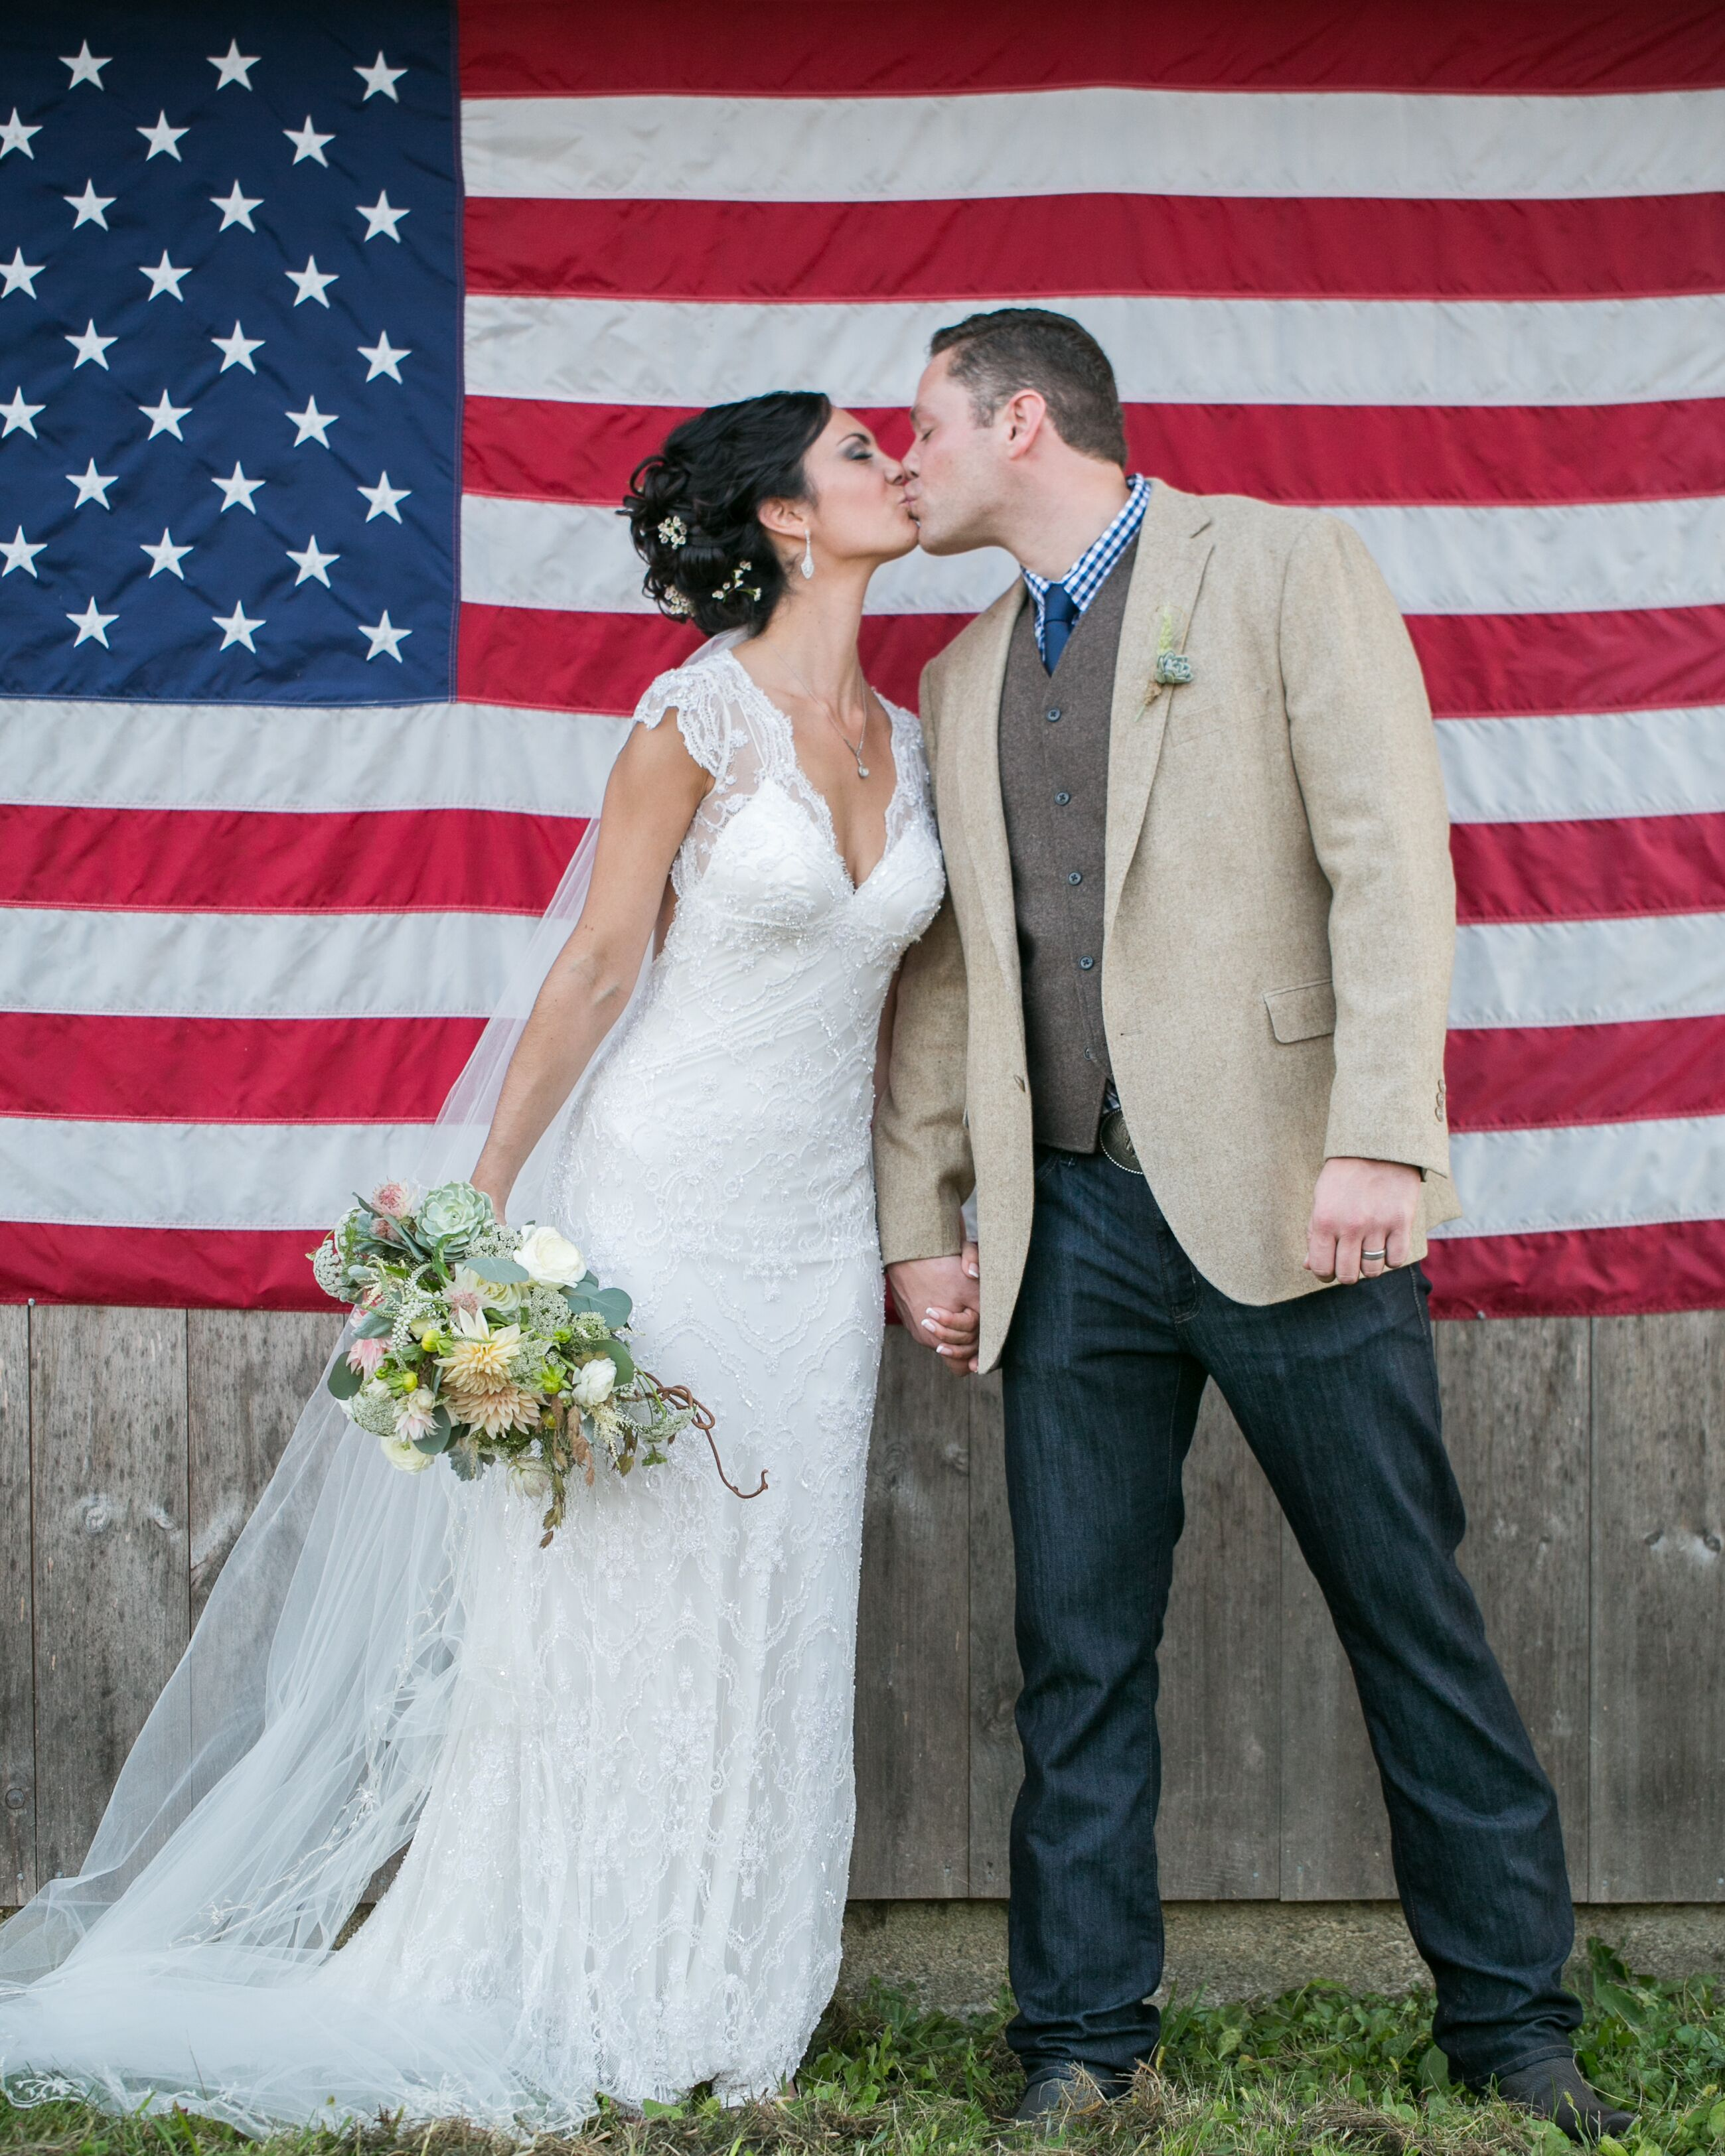 a rustic chic backyard wedding at a private home in pawcatuck